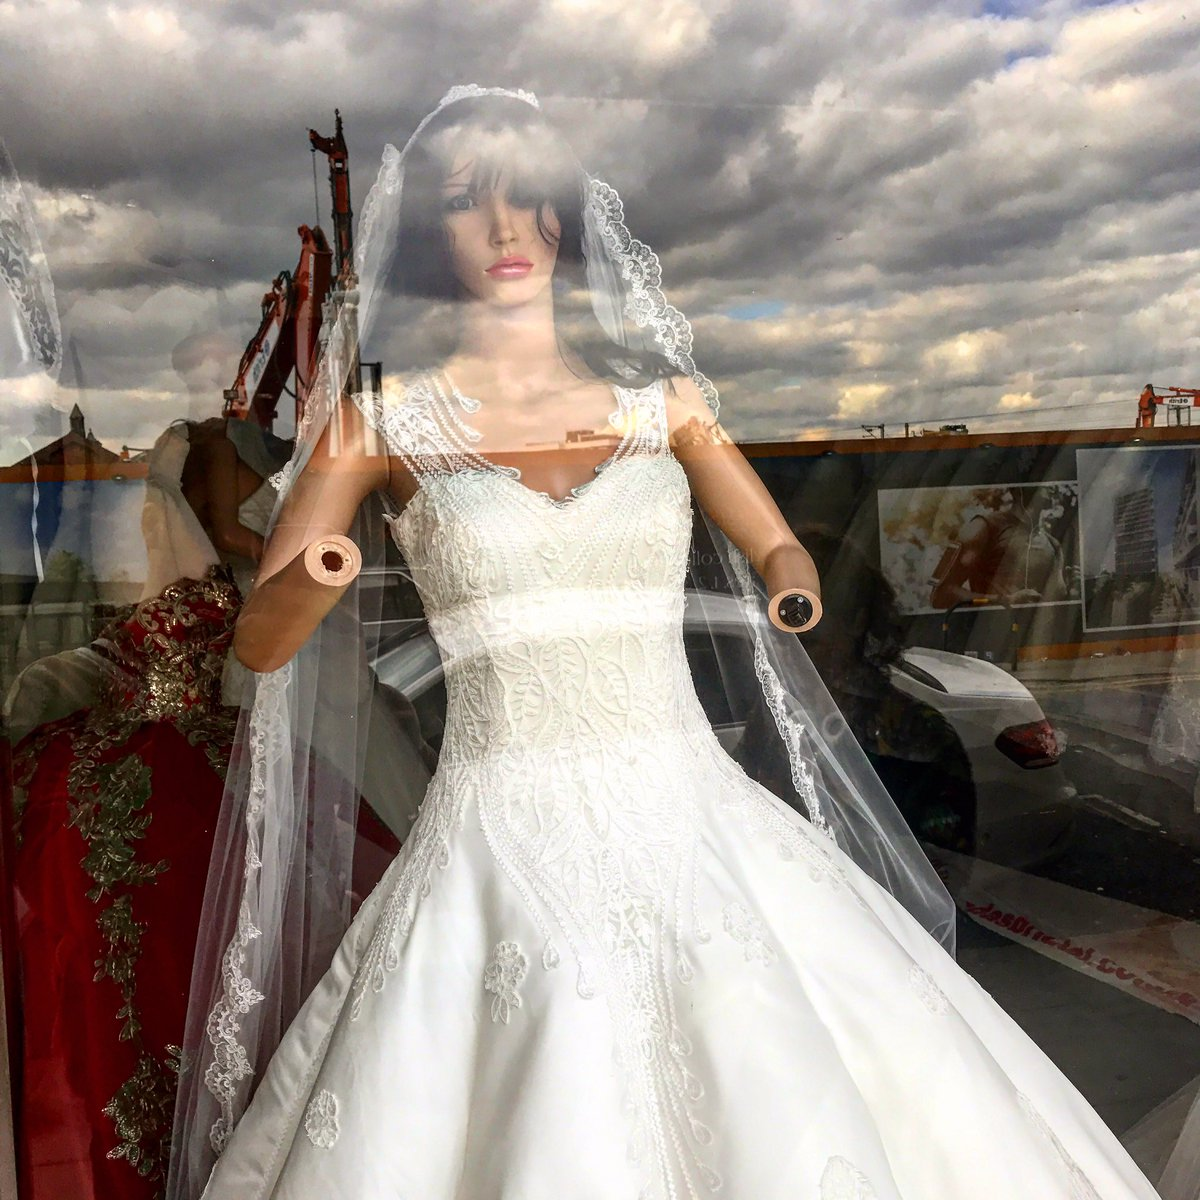 David Mumeni On Twitter Anyone Looking For A Wedding Dress Theres This Shop In Finsbury Park Which Is Sporting Fantastic Window Display